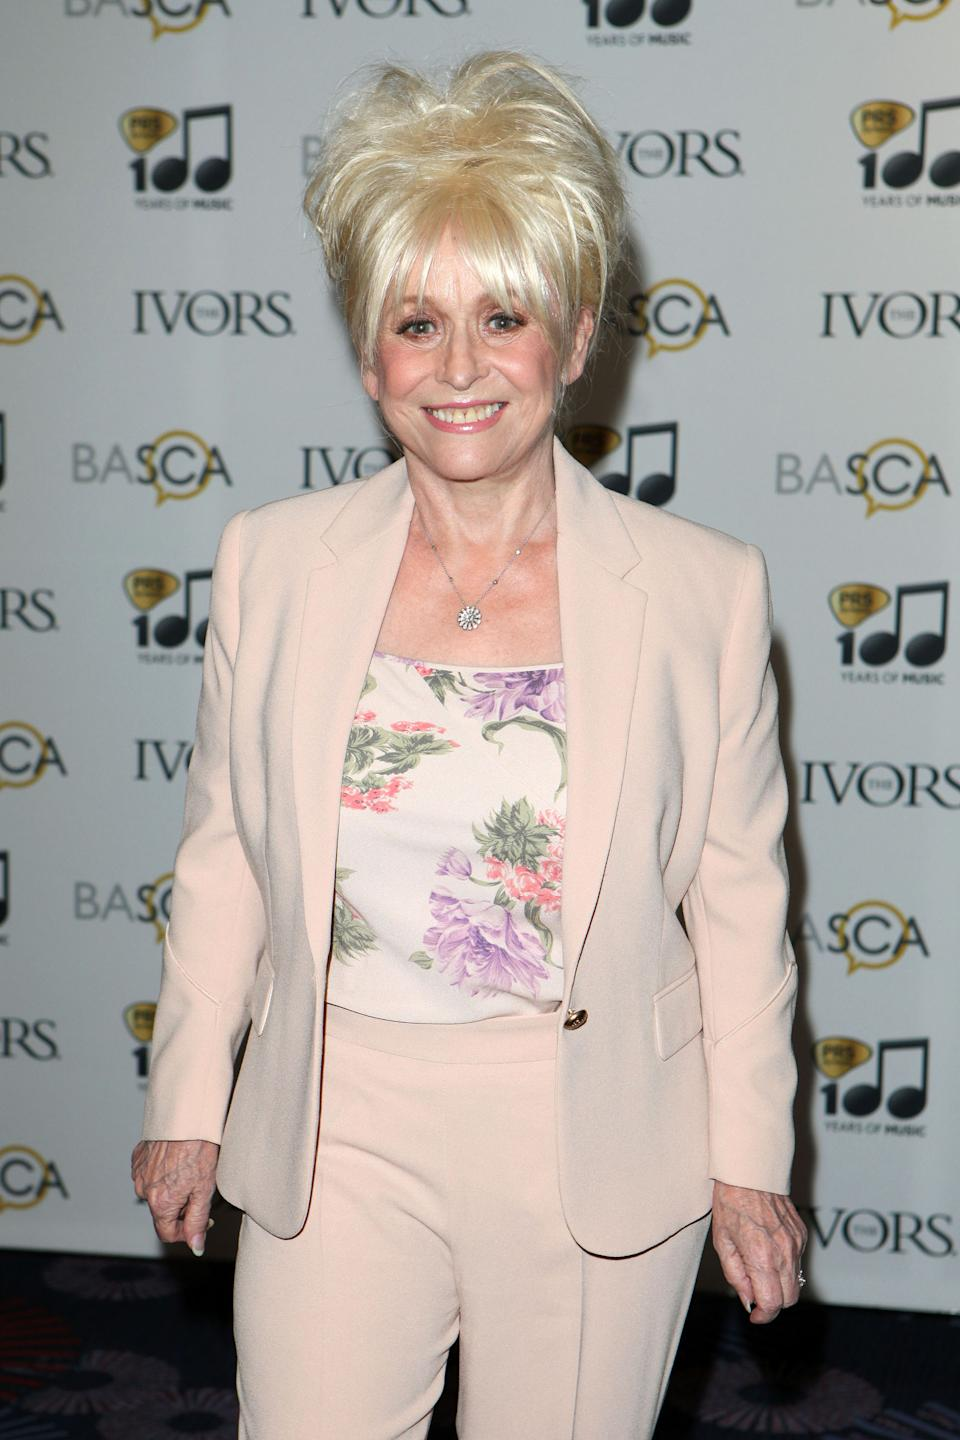 Barbara Windsor arriving for the 59th Ivor Novello Awards, at the Grosvenor House Hotel, London, on Thursday, May 22, 2014.  Photo by Mark Allan /Invision/AP)